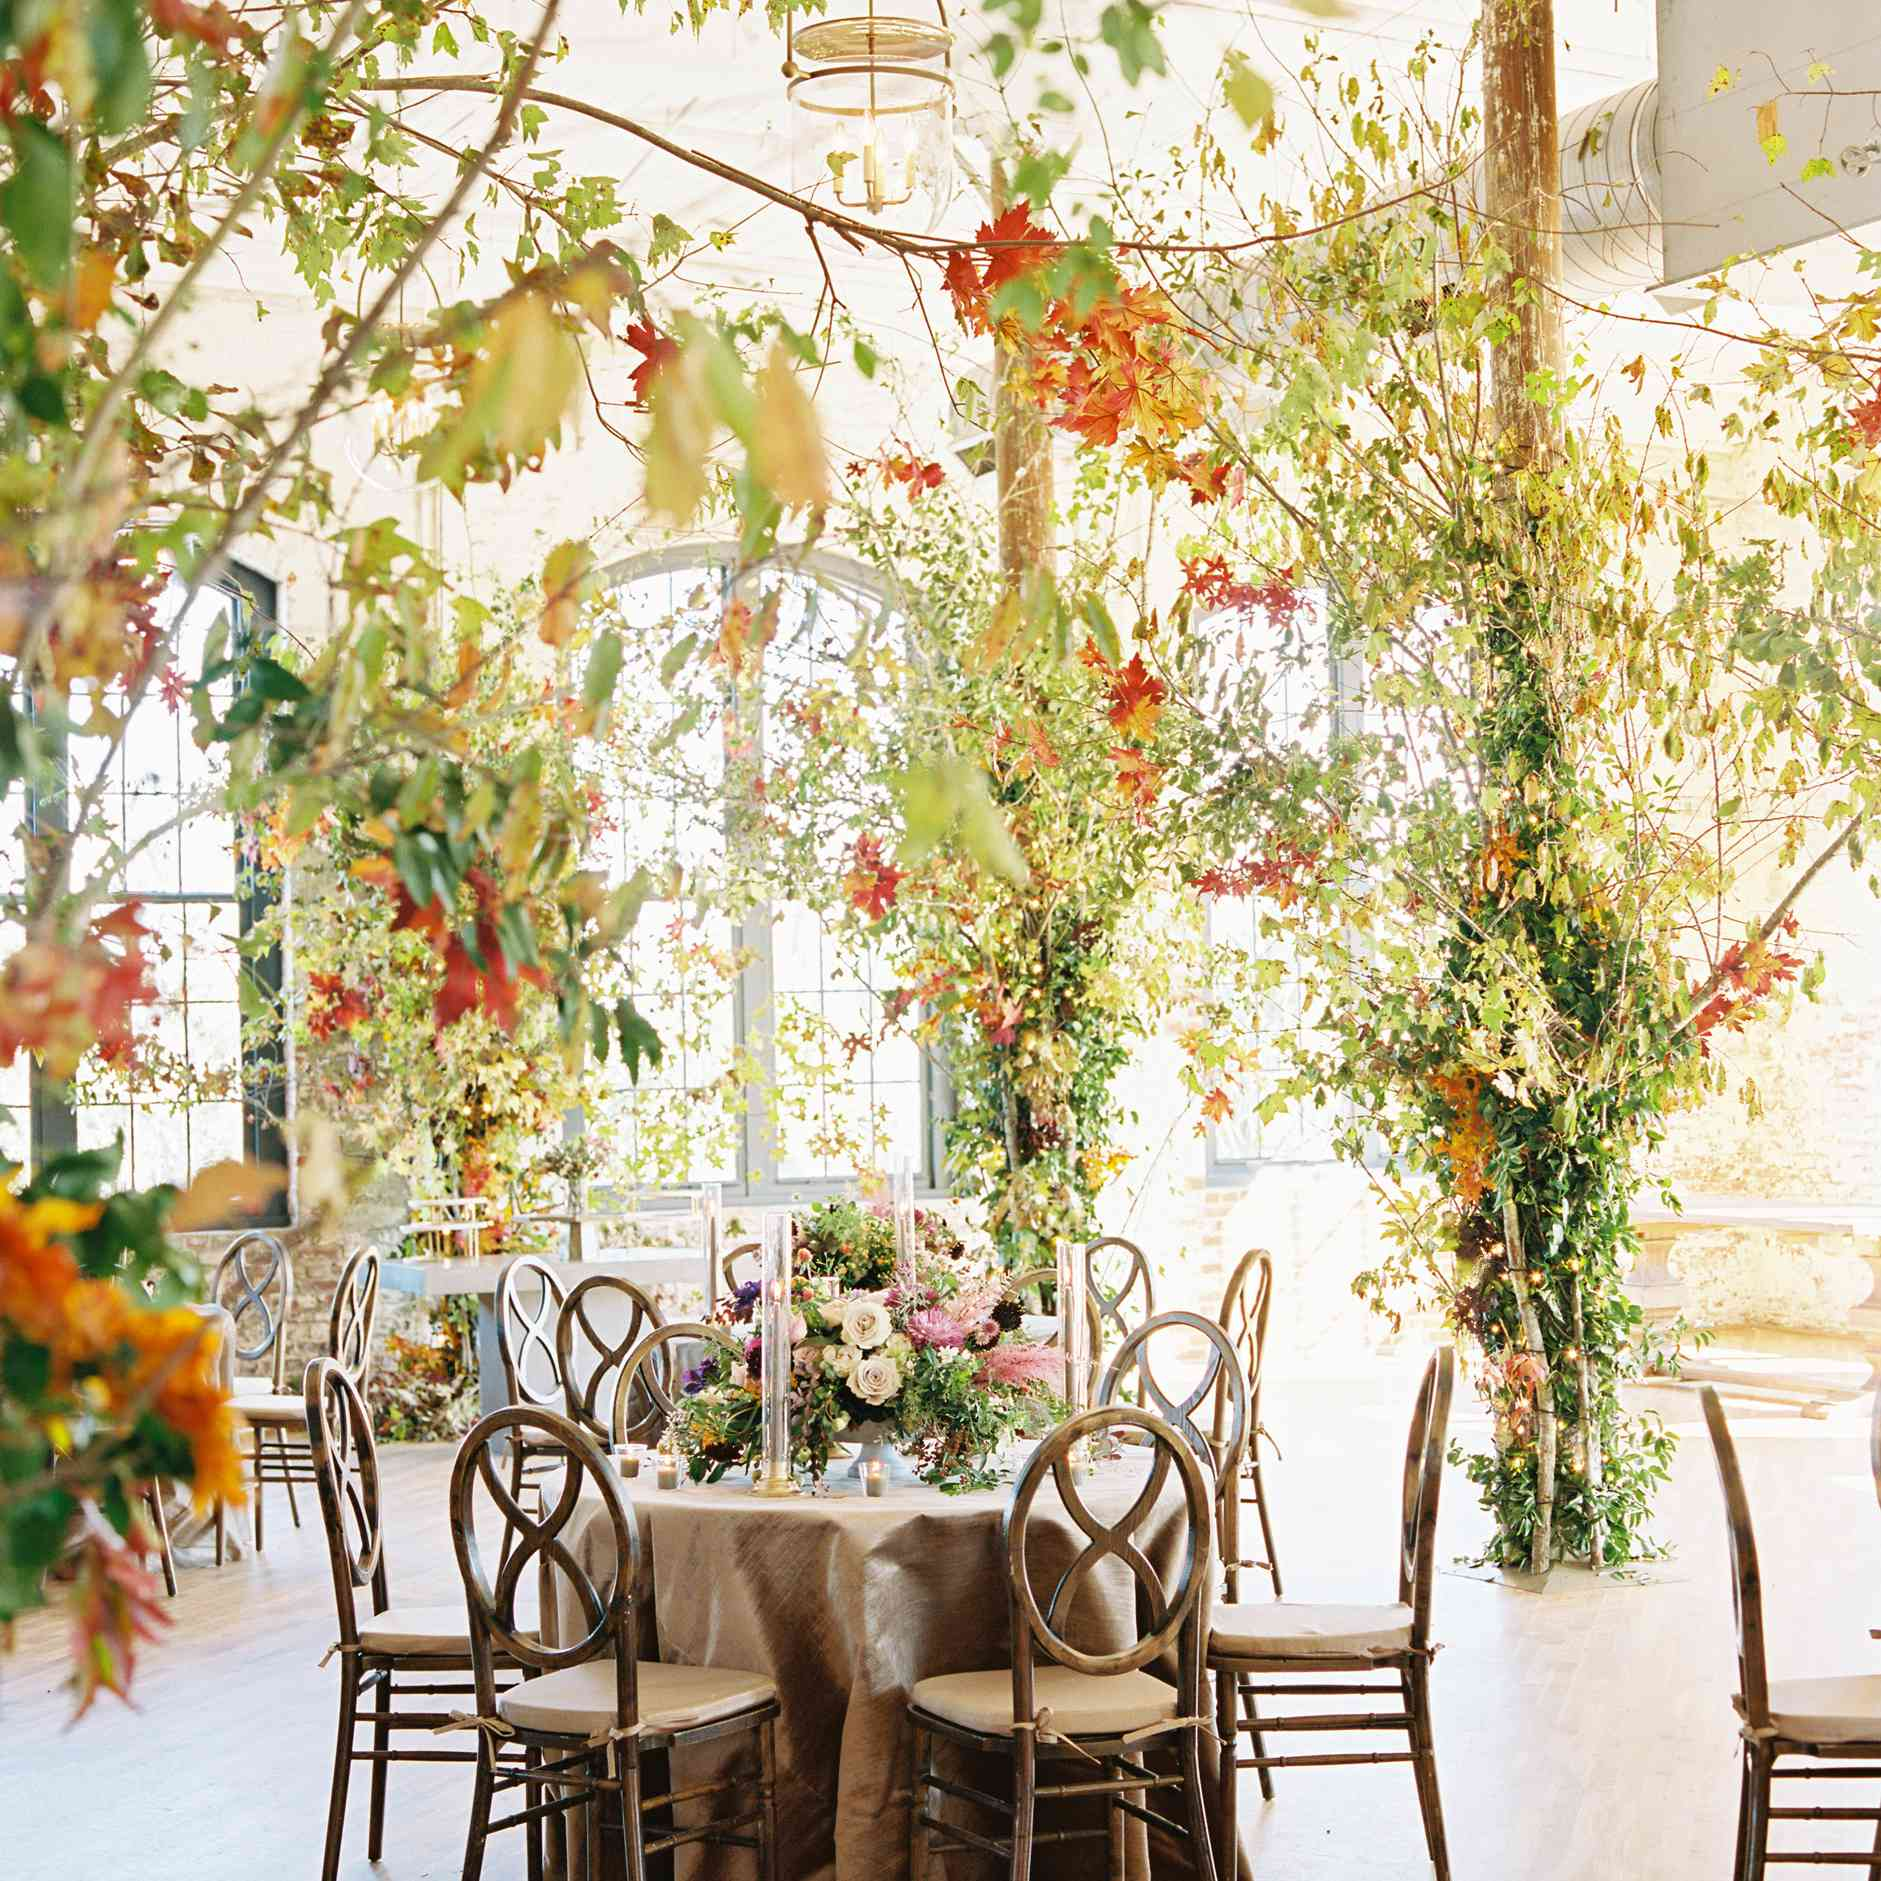 Autumnal greenery, leaves, and floral reception décor